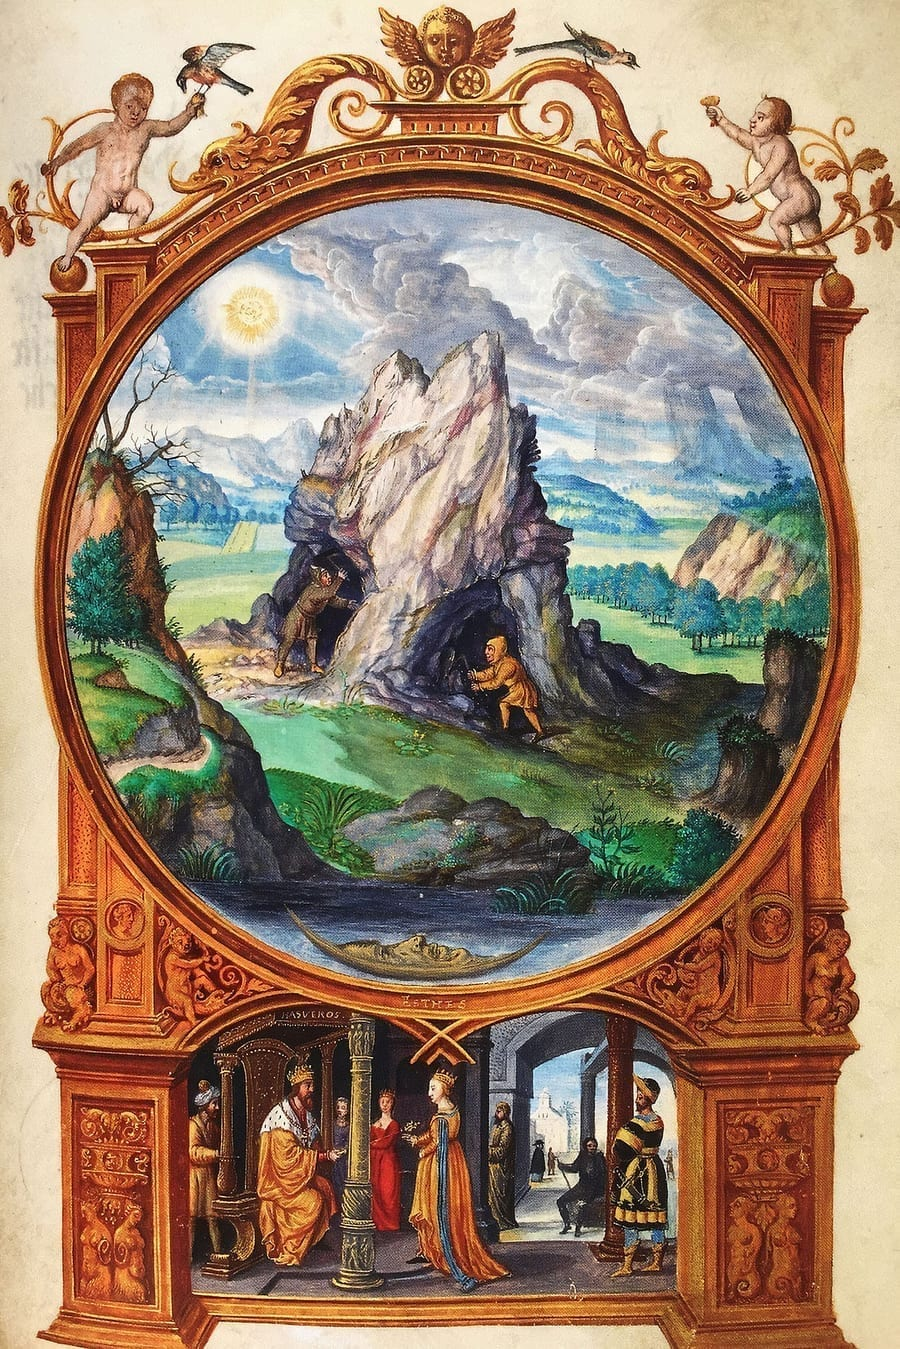 Illustration of Mining the Ore from the Alchemical manuscript Splendor Solis